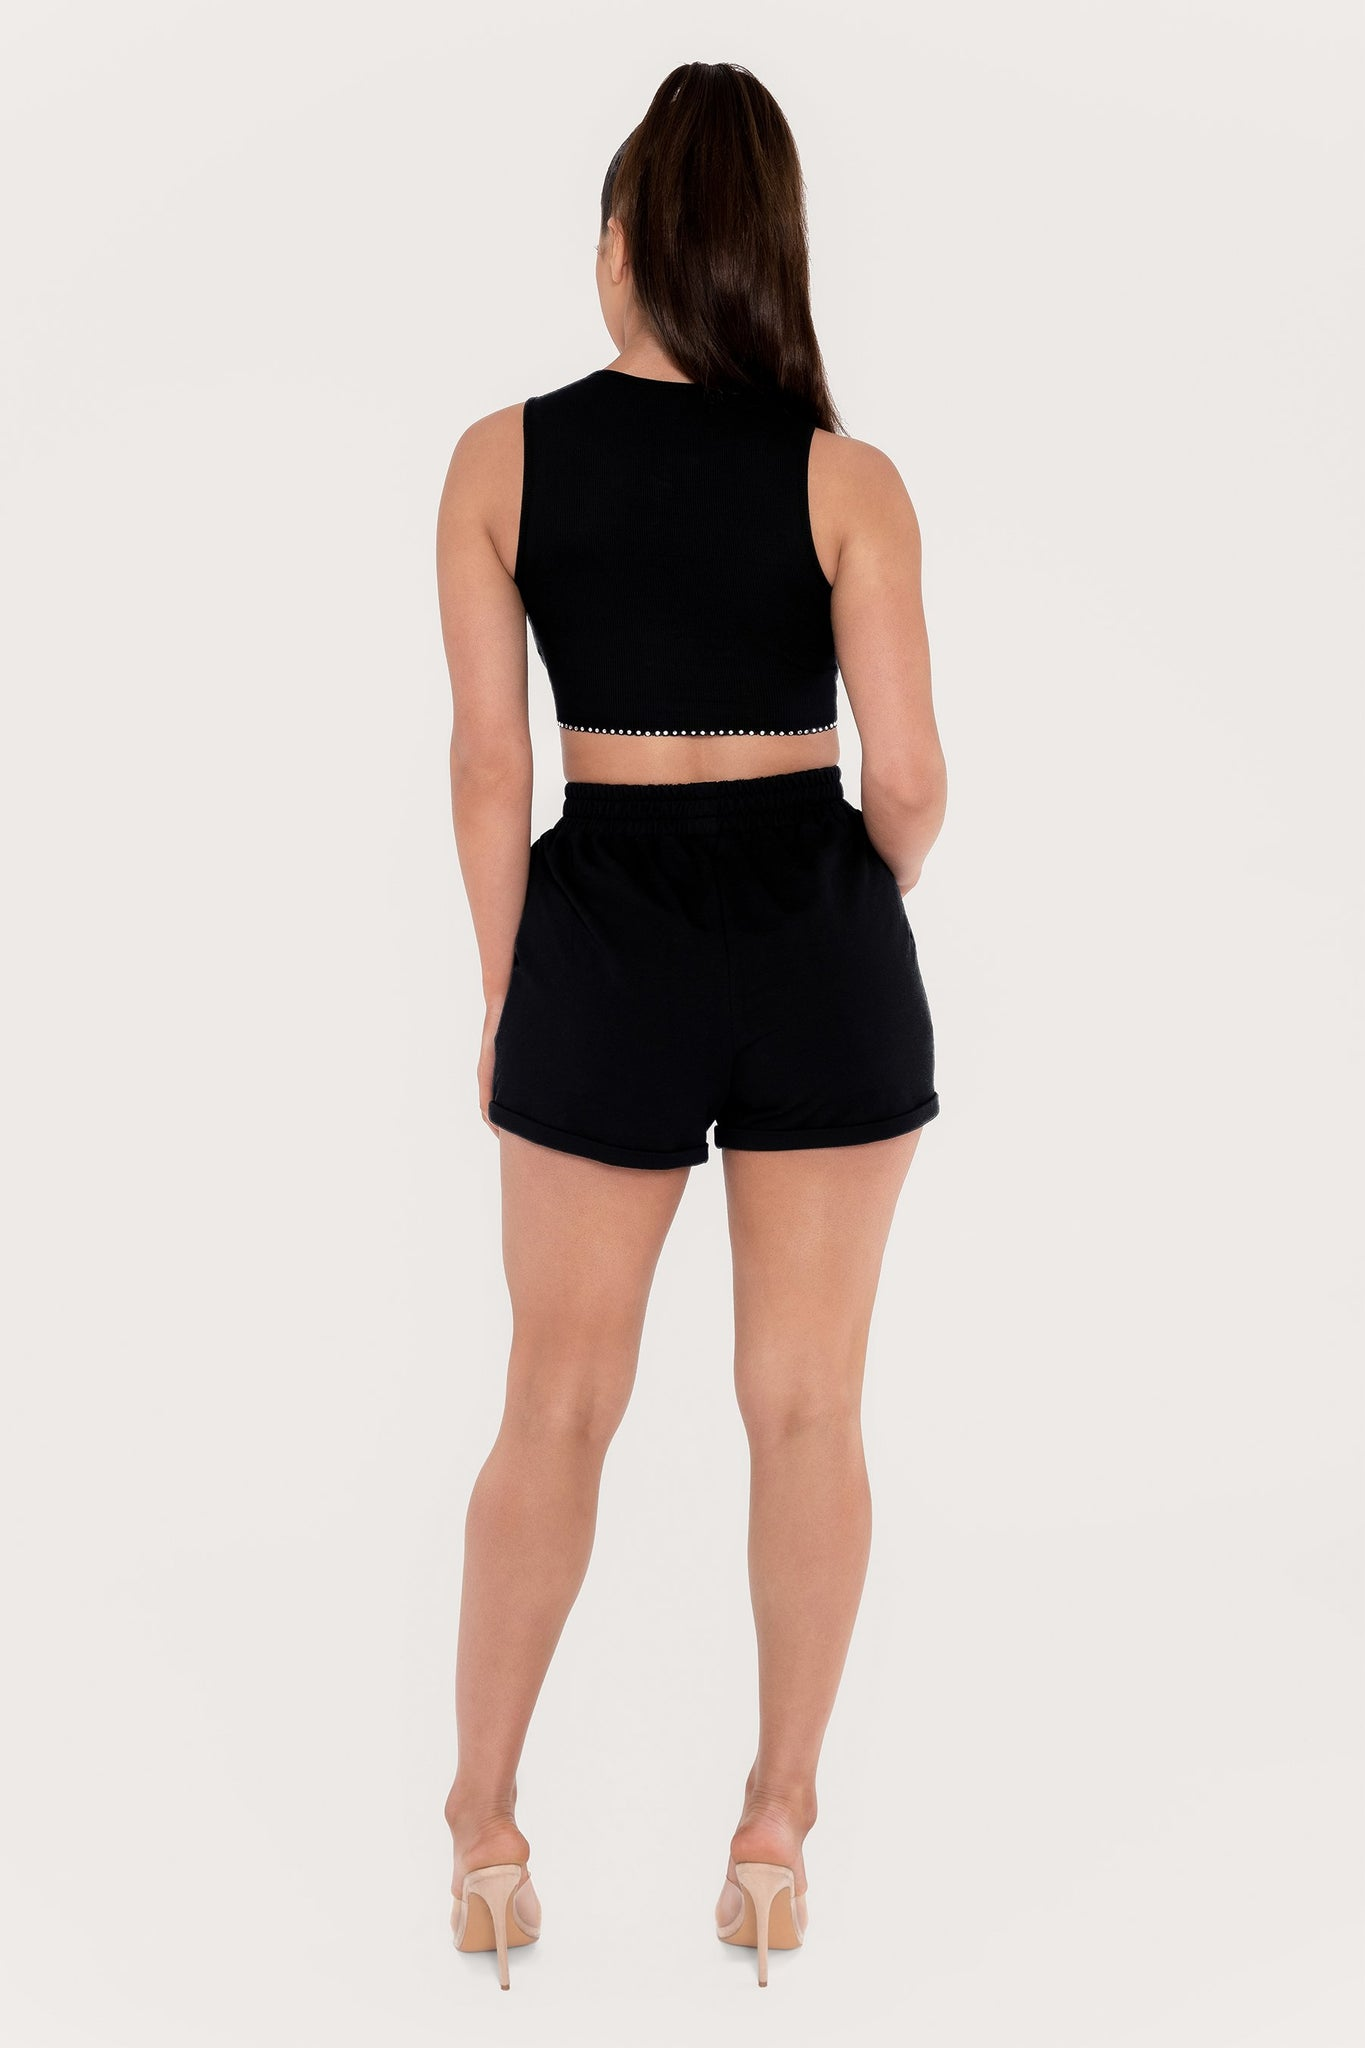 Keila Diamante Trim Ribbed Crop Top - Black - MESHKI